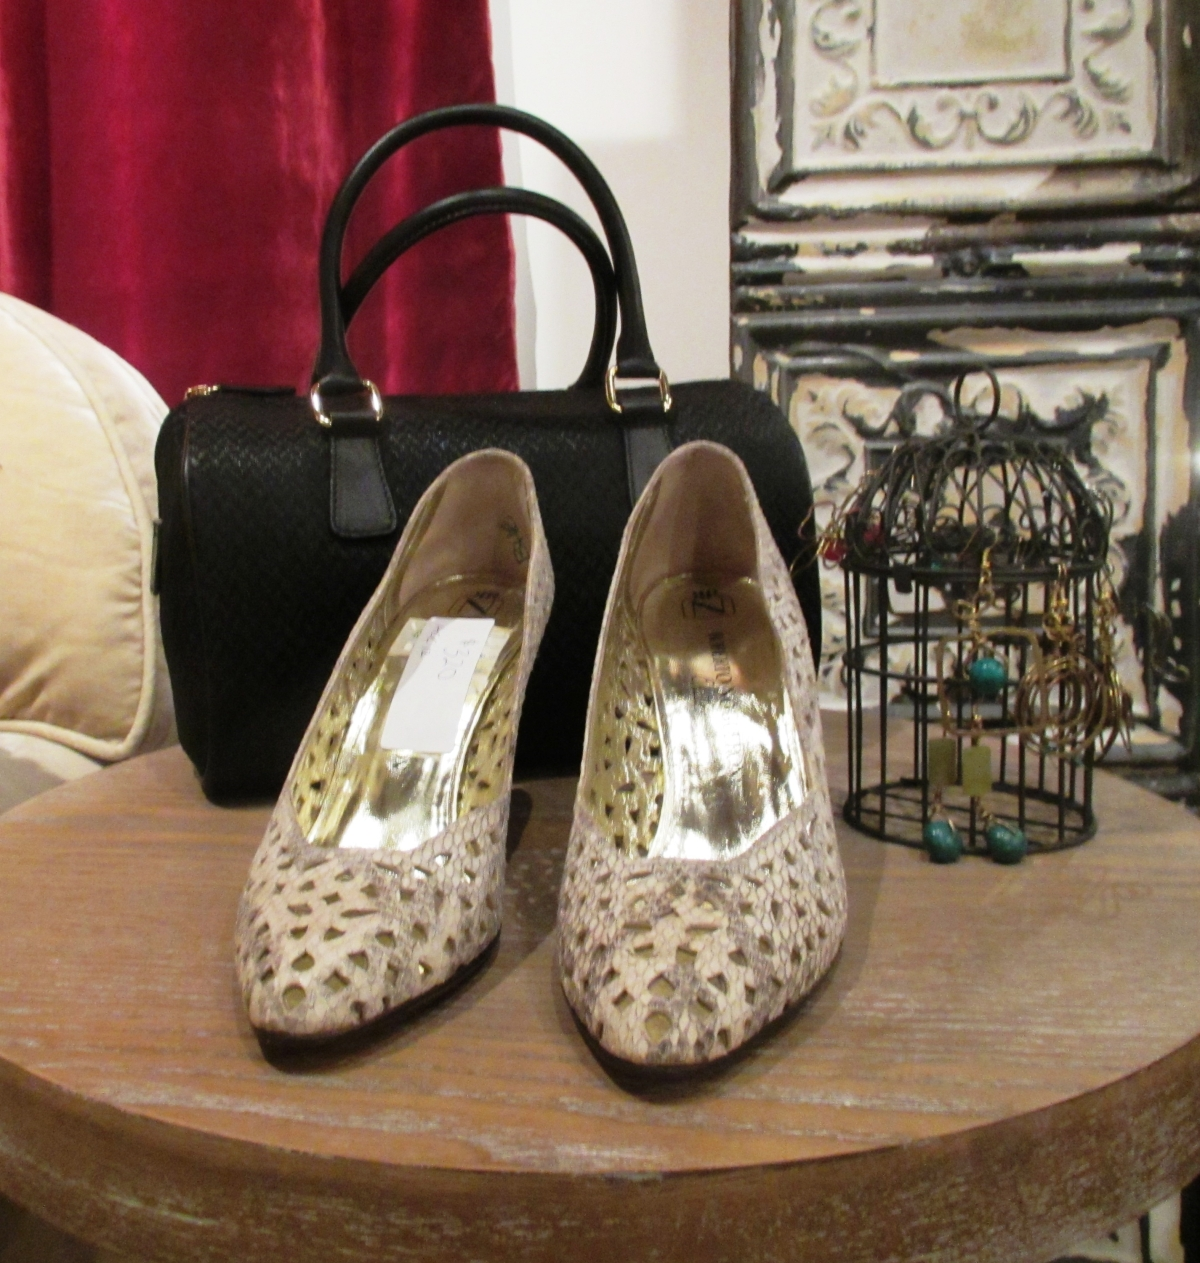 Vintage high heels (Kaileeni), black handbag (B. Mori) and earrings (Cukimber)